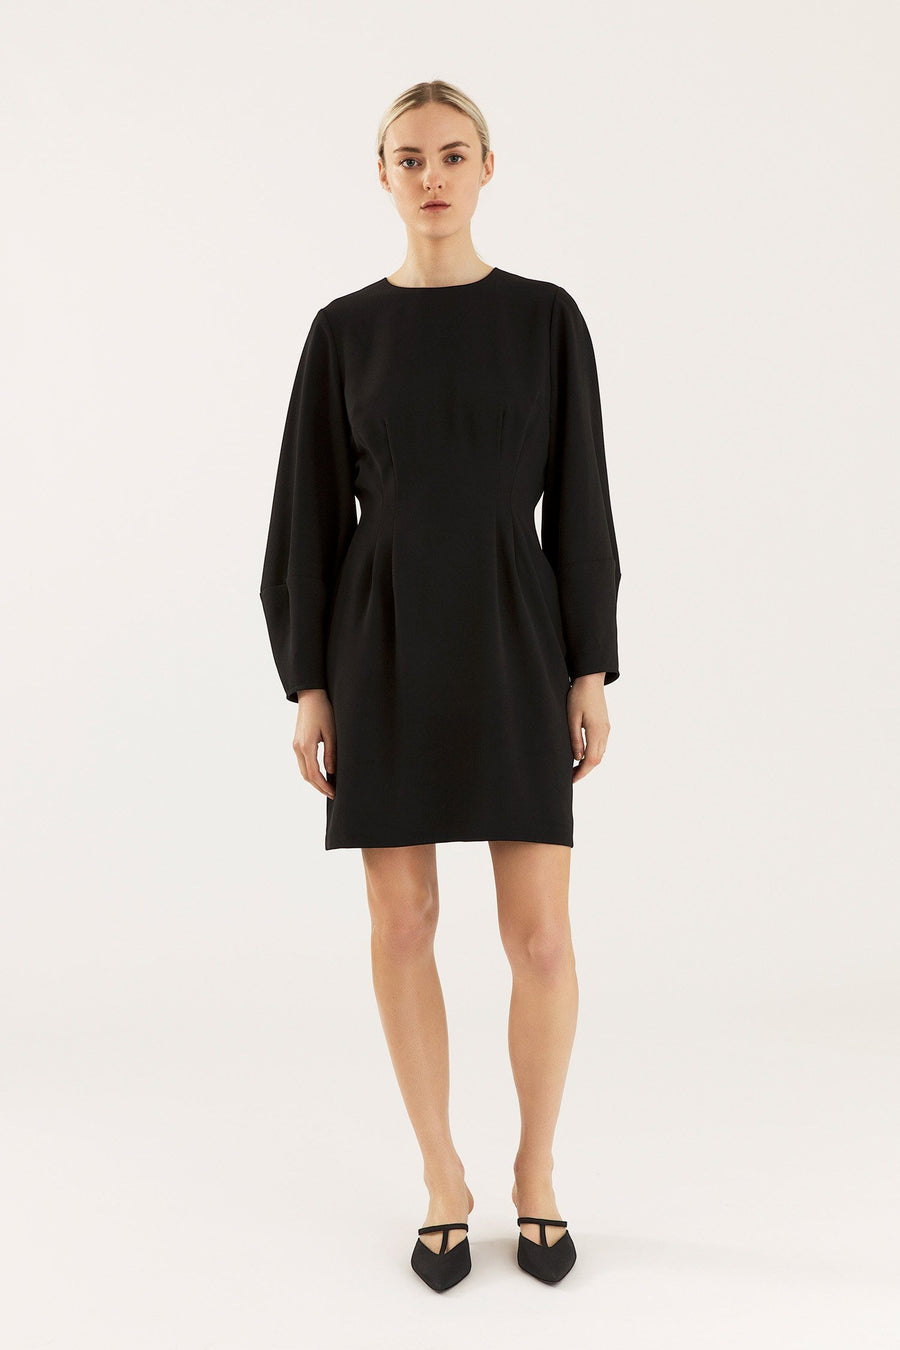 BENNET DRESS - BLACK Dress Stylein